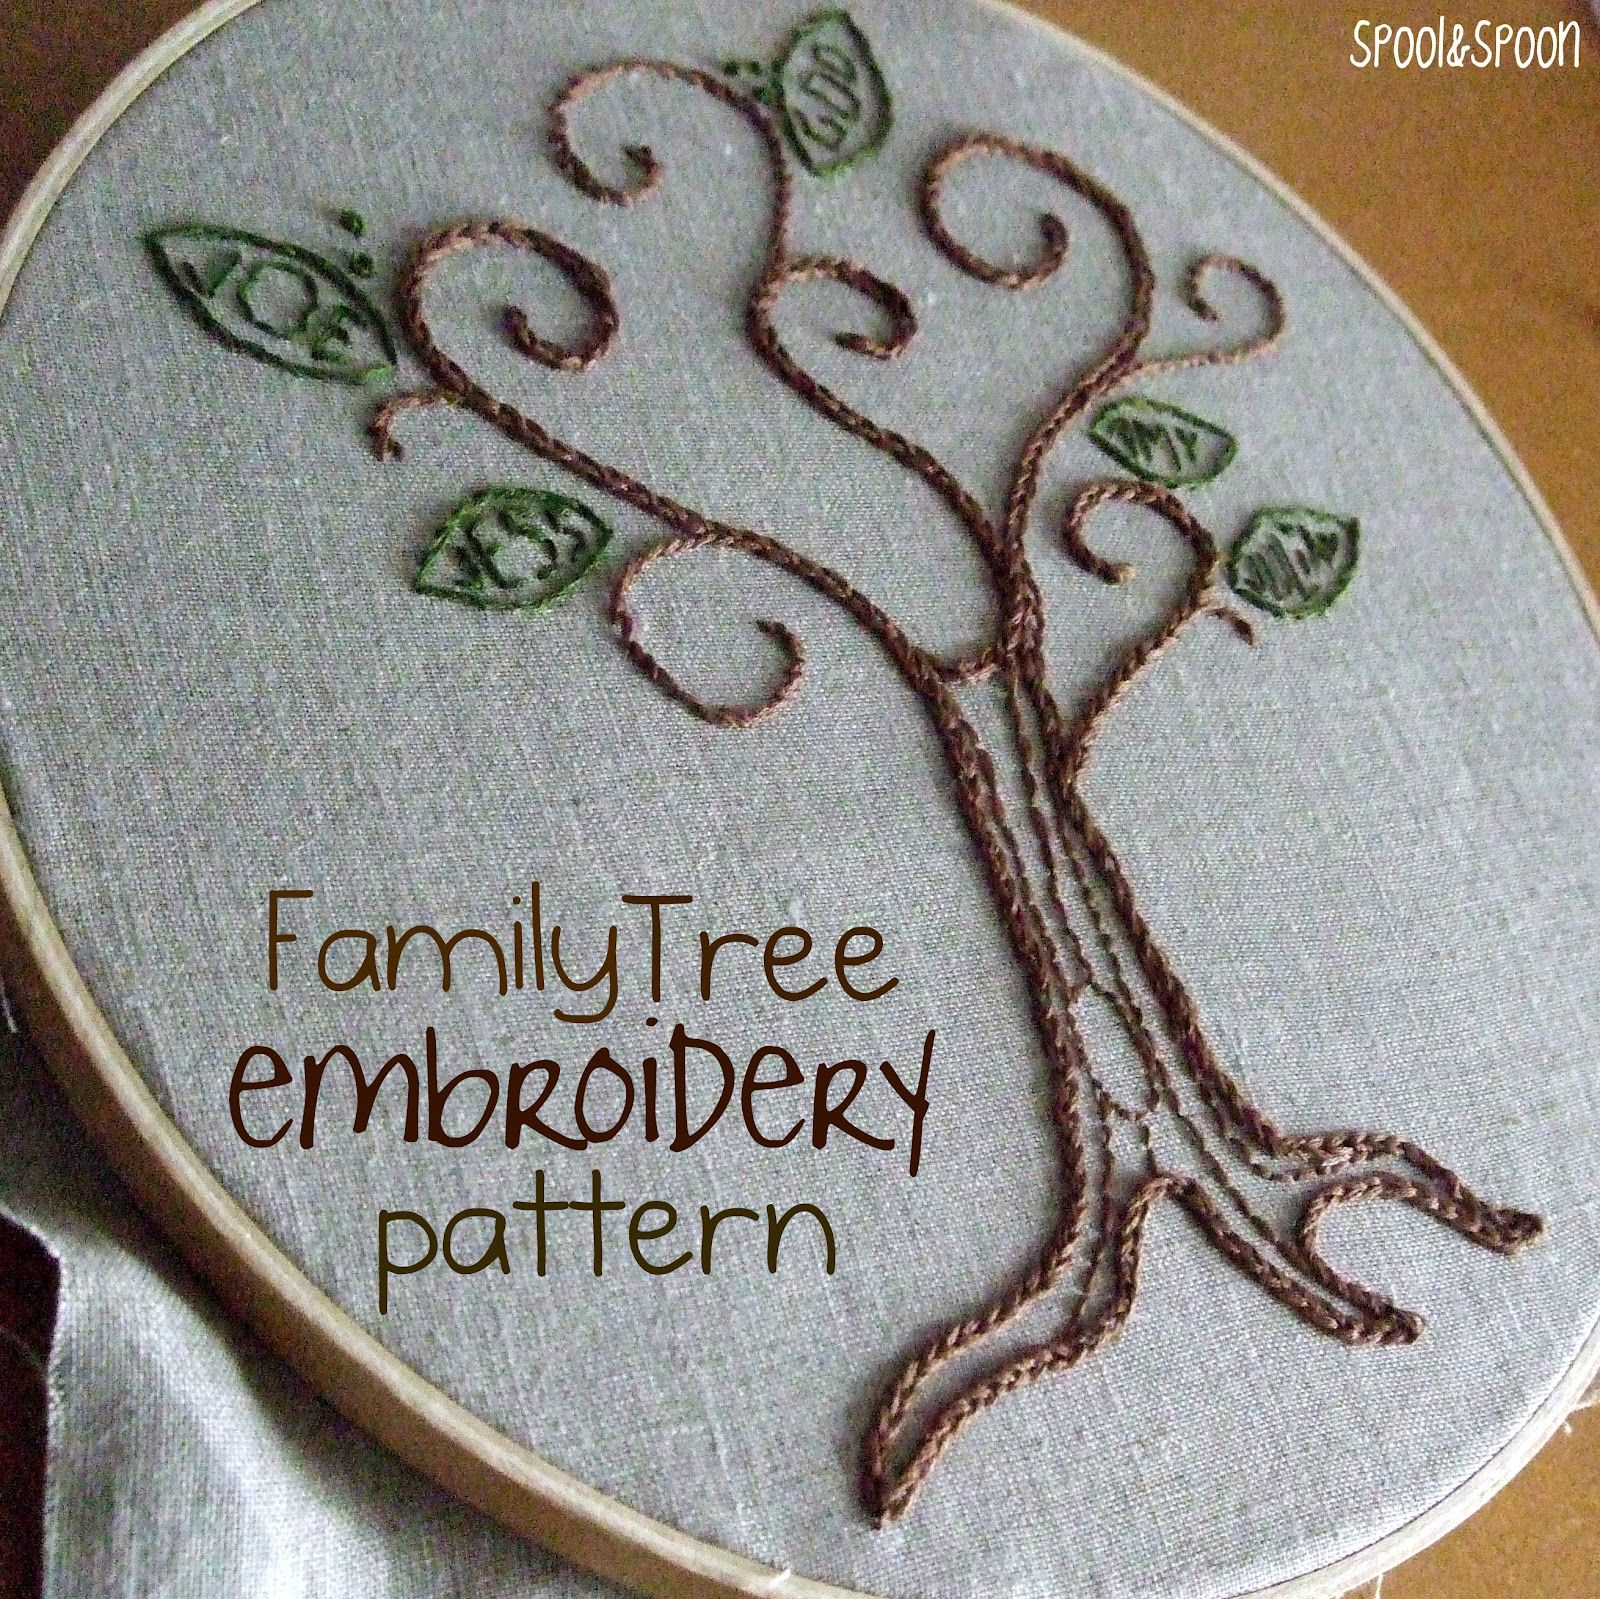 Spool and spoon family tree embroidery pattern ideas spool and spoon family tree embroidery pattern bankloansurffo Choice Image